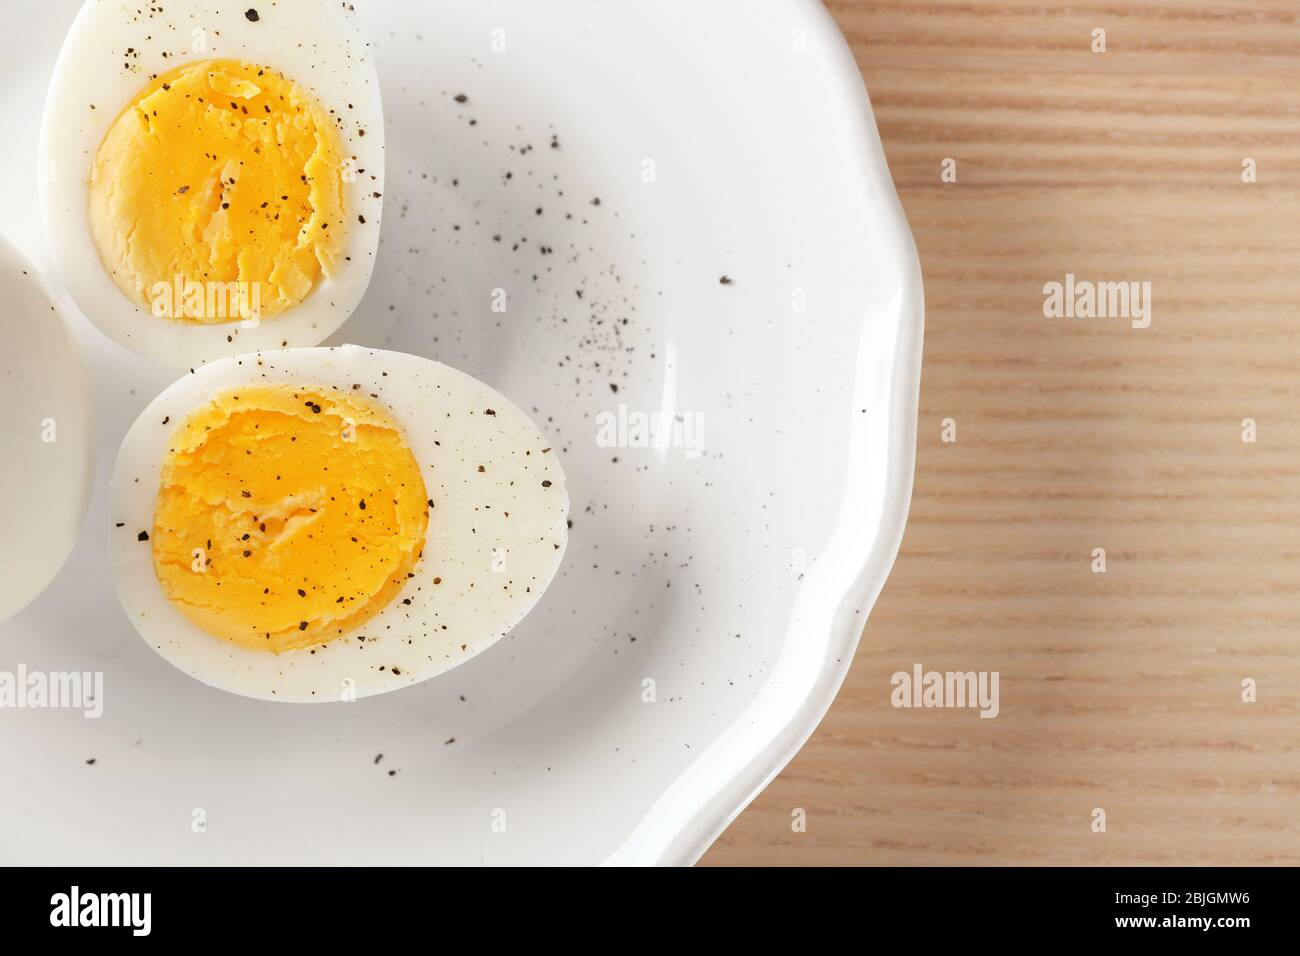 White Ceramic Plate With Hard Boiled Eggs On Table Nutrition Concept Stock Photo Alamy